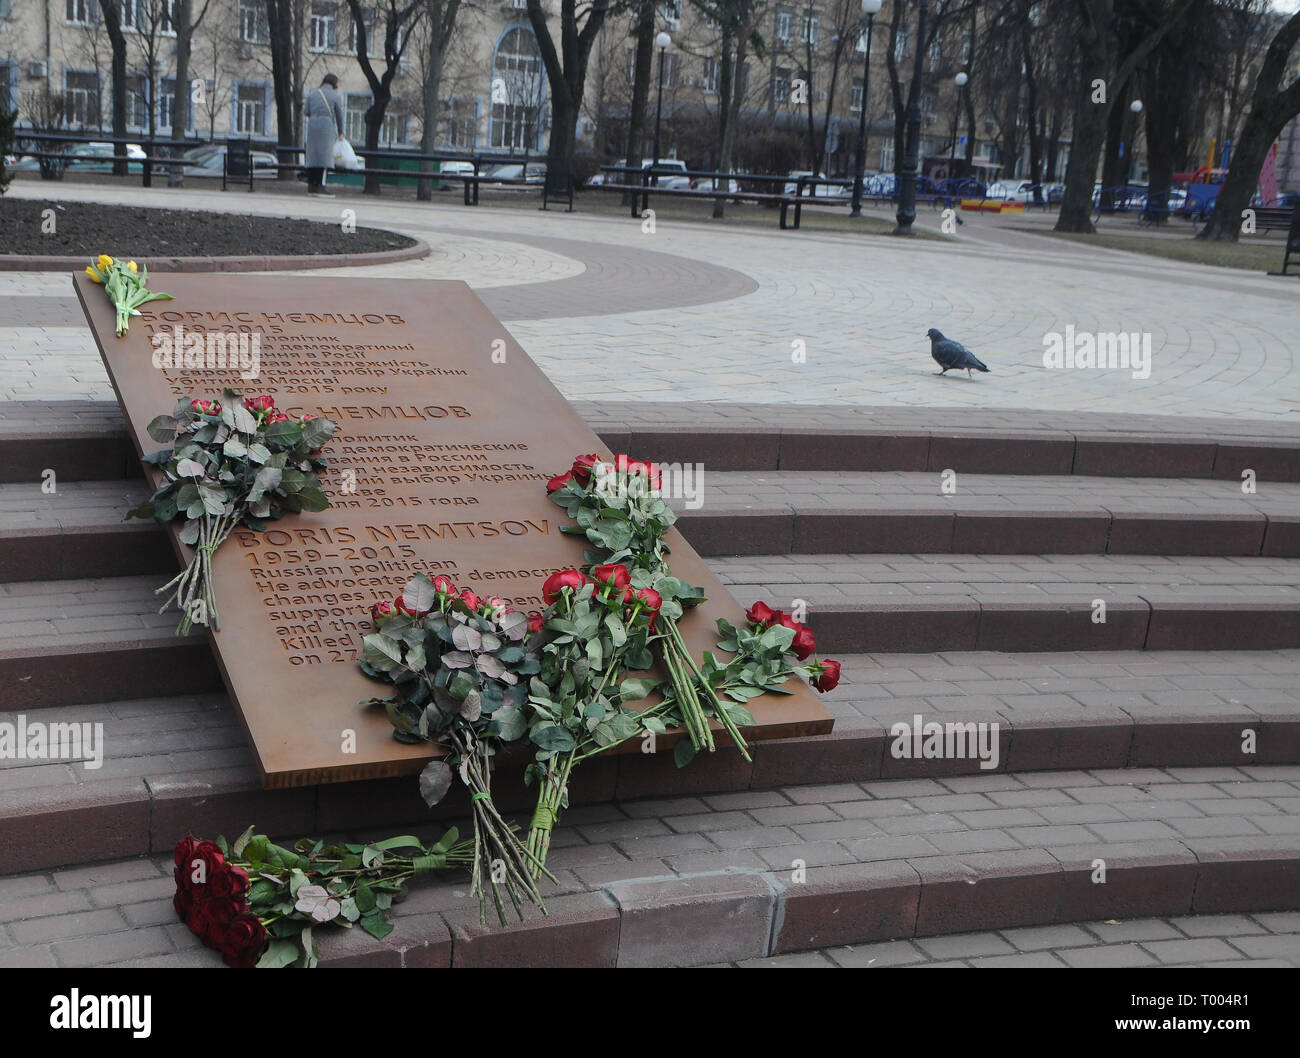 Kiev, Ukraine. 15th March 2019. The Boris Nemtsov plaque inside the square named after his name during the opening day. The Russian opposition leader Boris Nemtsov was killed 4 years ago in the center of Moscow on February 27, 2015. In the murder case, five Chechen natives were convicted and found guilty of the crime. Credit: SOPA Images Limited/Alamy Live News - Stock Image